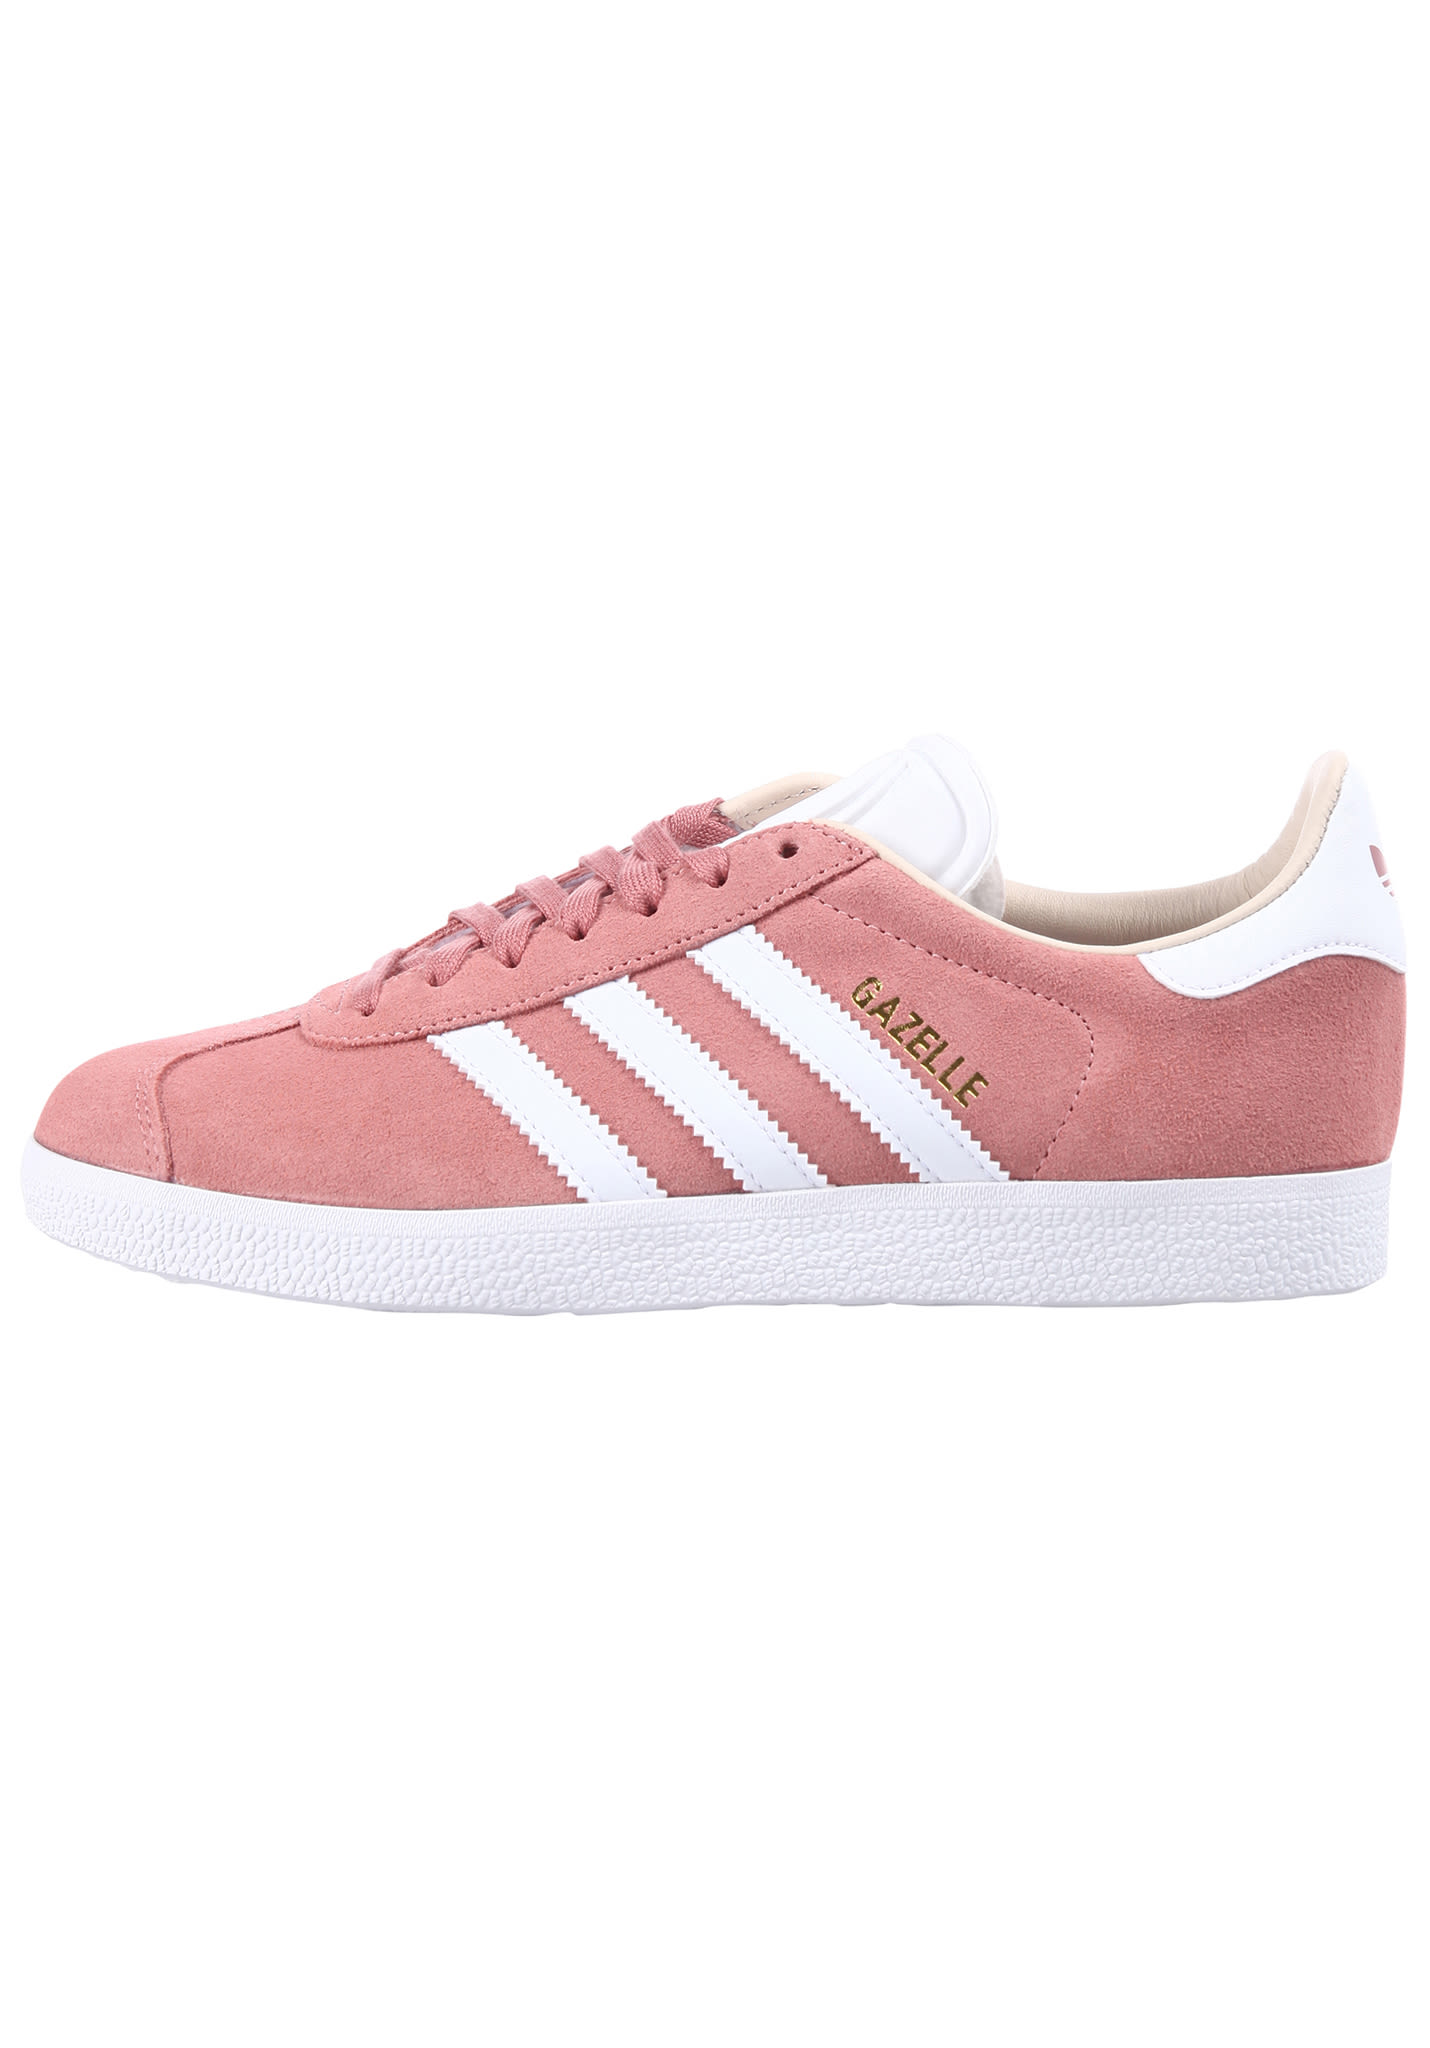 official photos 41268 d57bd ADIDAS ORIGINALS Gazelle - Sneakers for Women - Pink